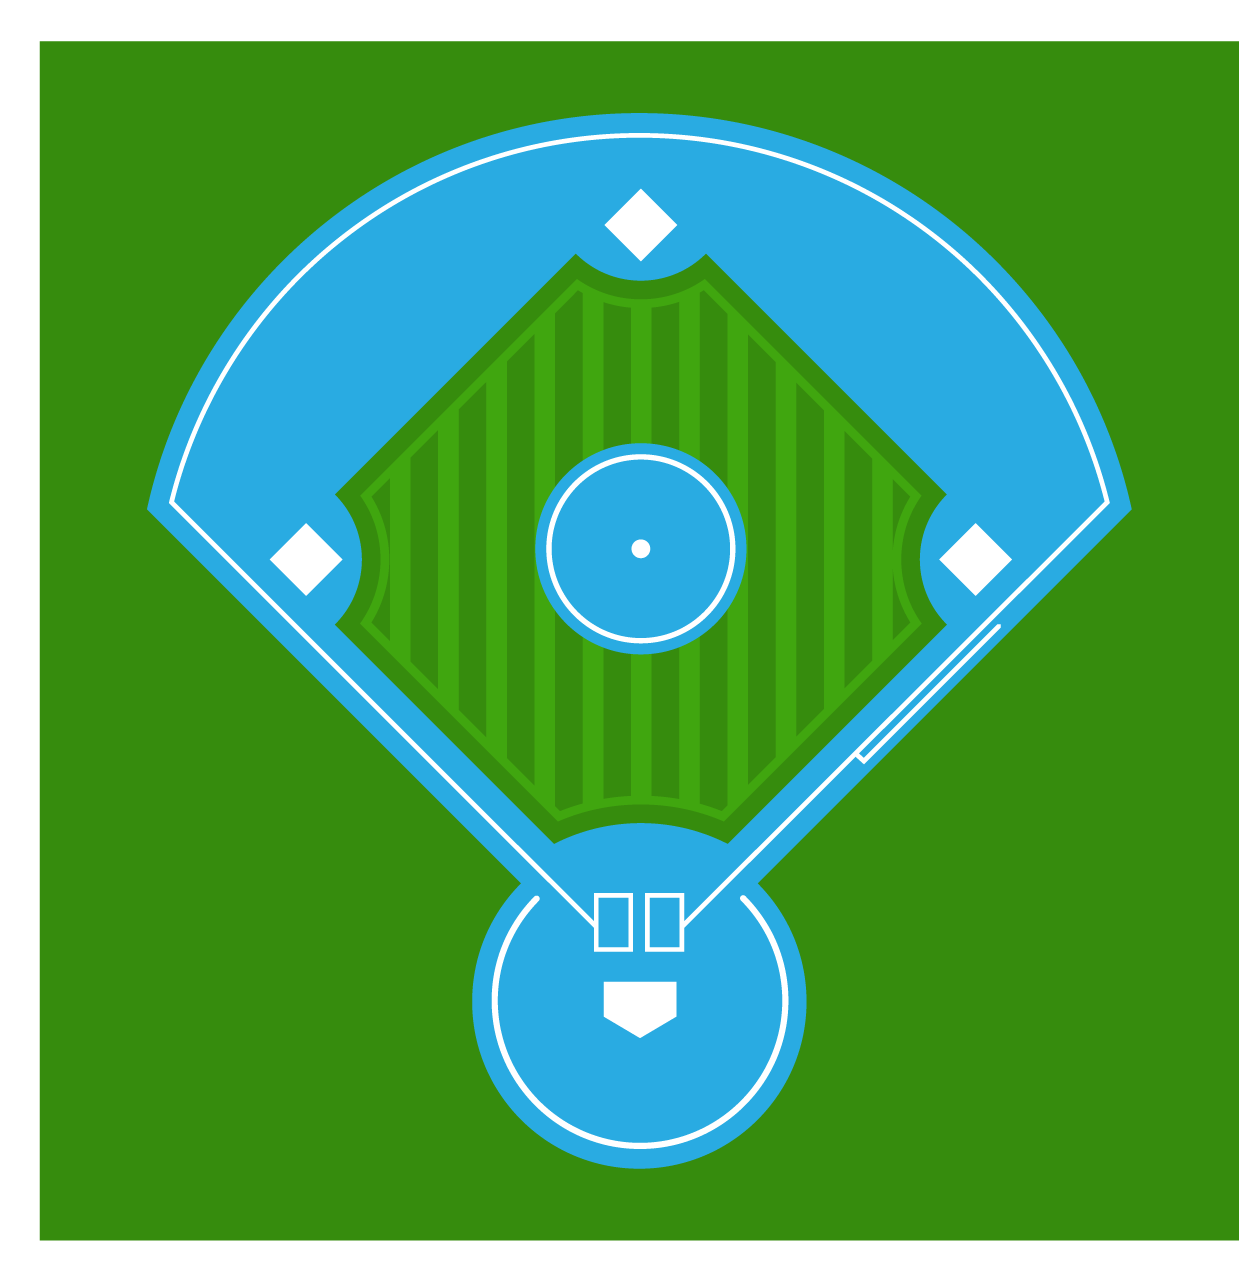 The baseball field is diamond shaped and people usually compare it to a rhombus